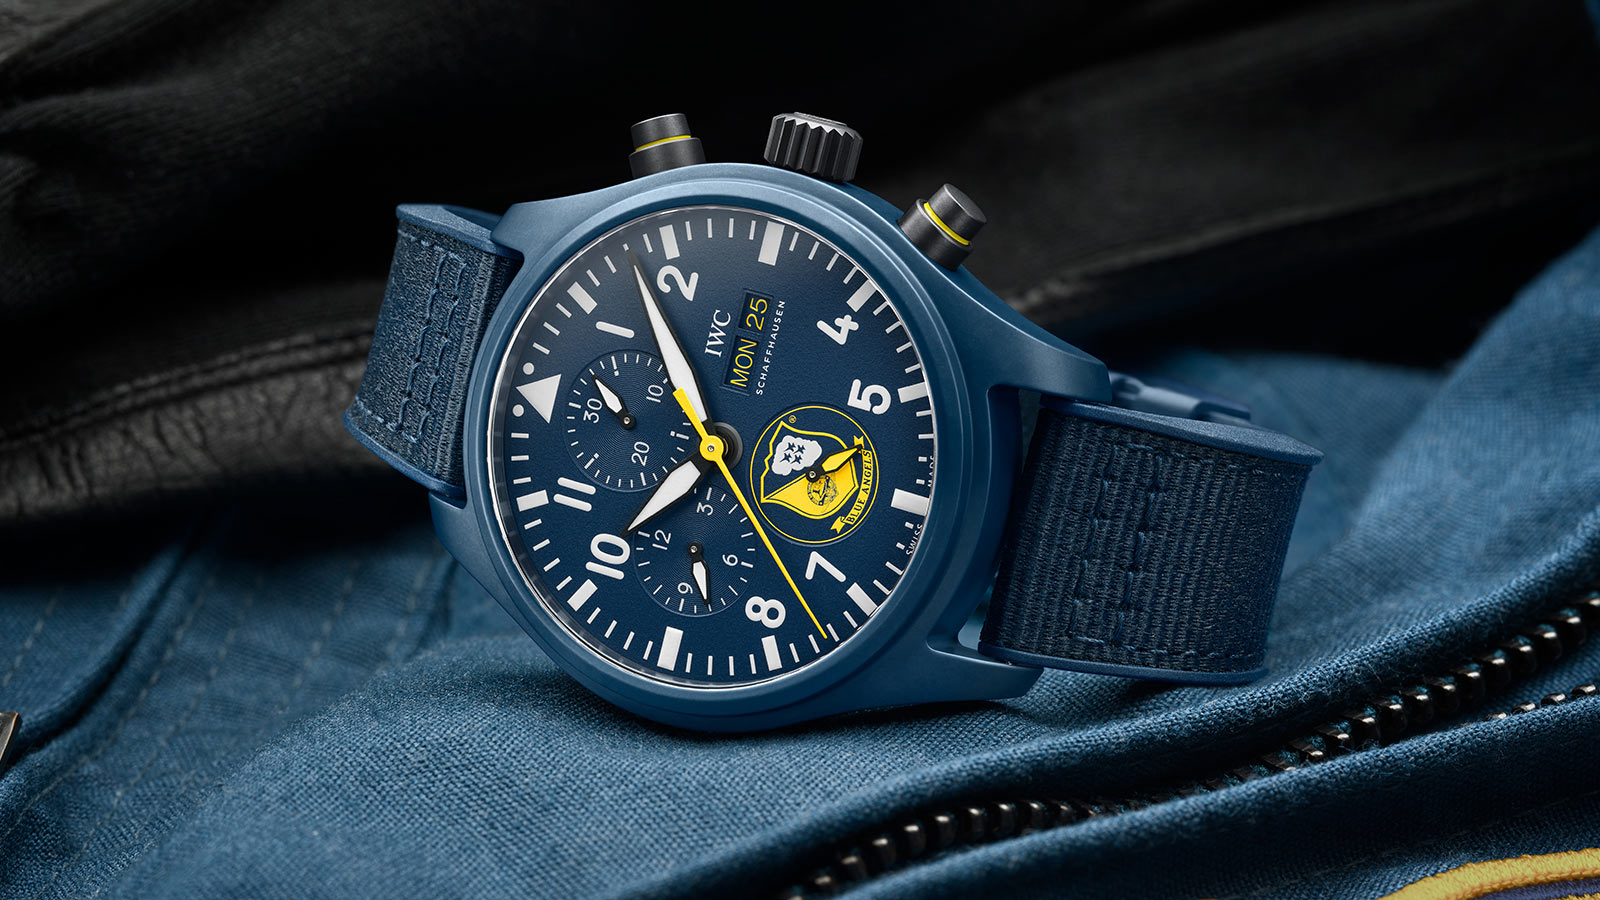 IWC Pilot's Watch Ceramic Chronographs inspired by the U.S. Navy Squadrons